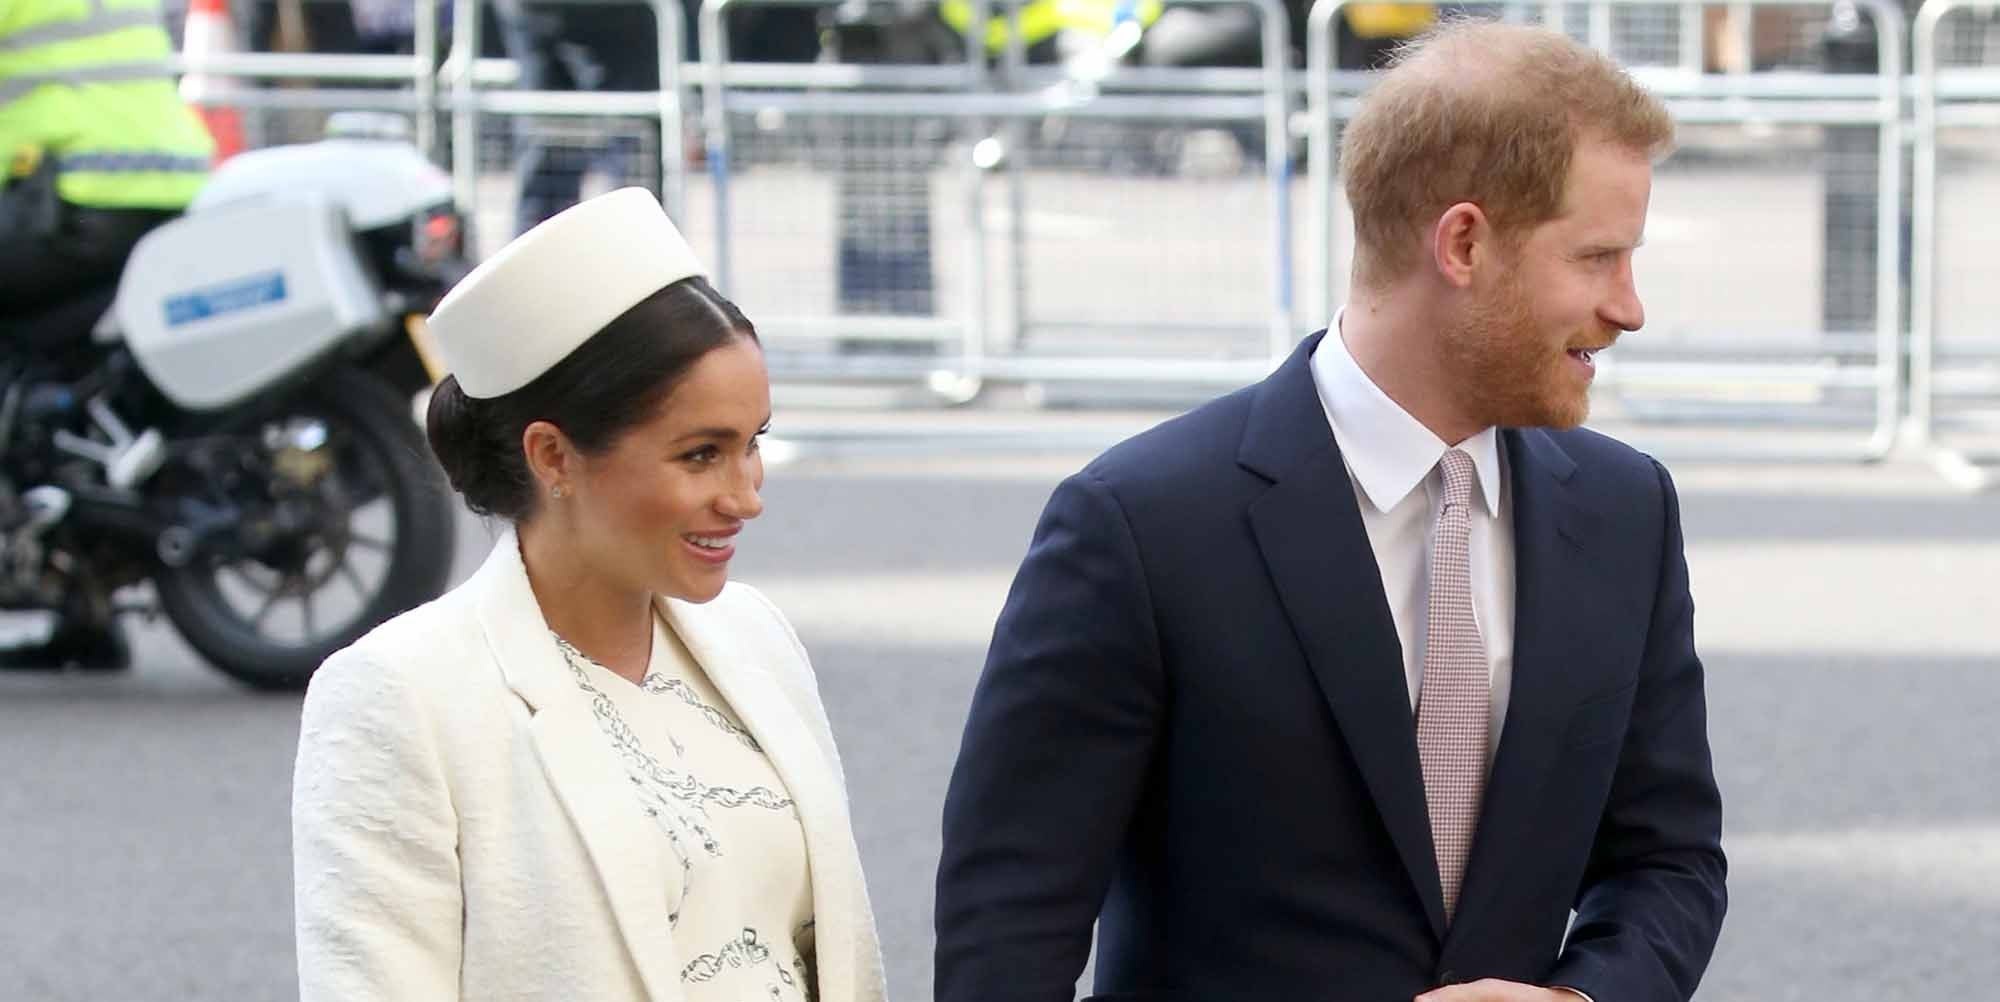 The Royal Family Gathers at Westminster Abbey for Commonwealth Day 2019